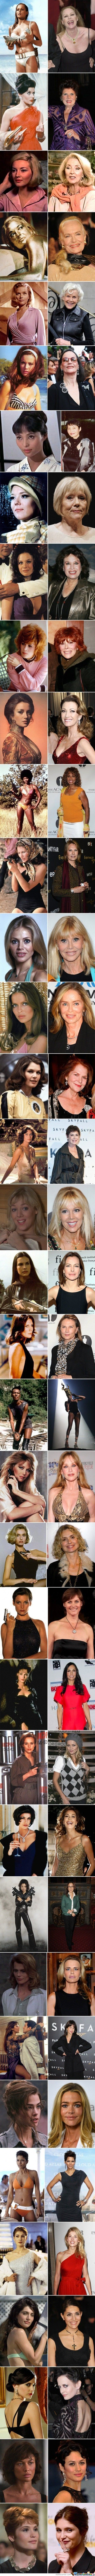 Bond Girls, Then And Now